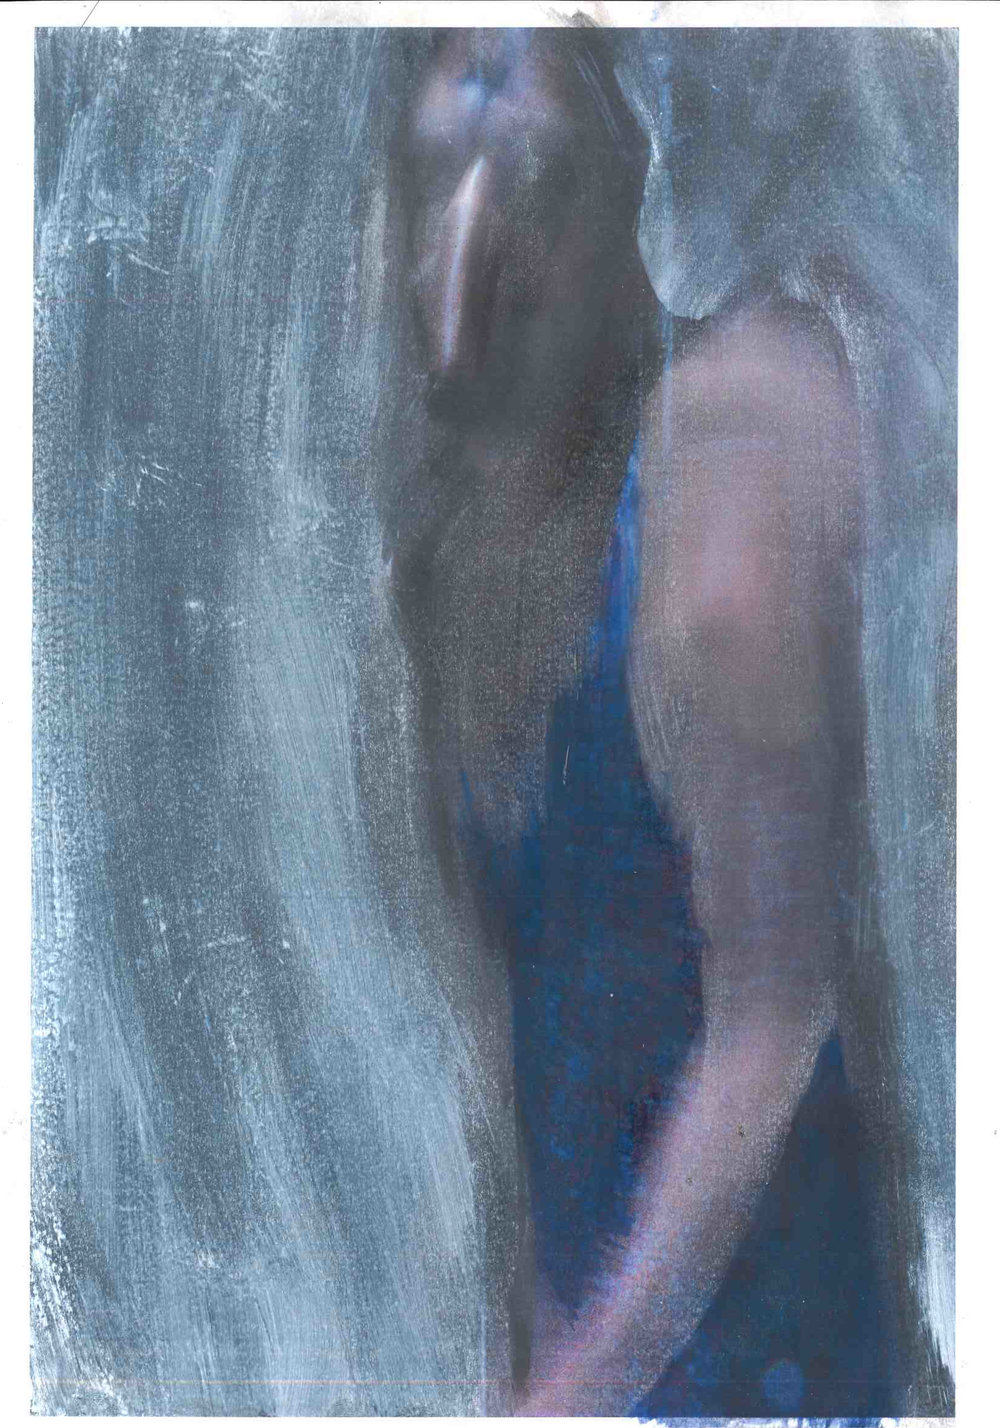 study for false anima 1:5, oil on paper with photographic element